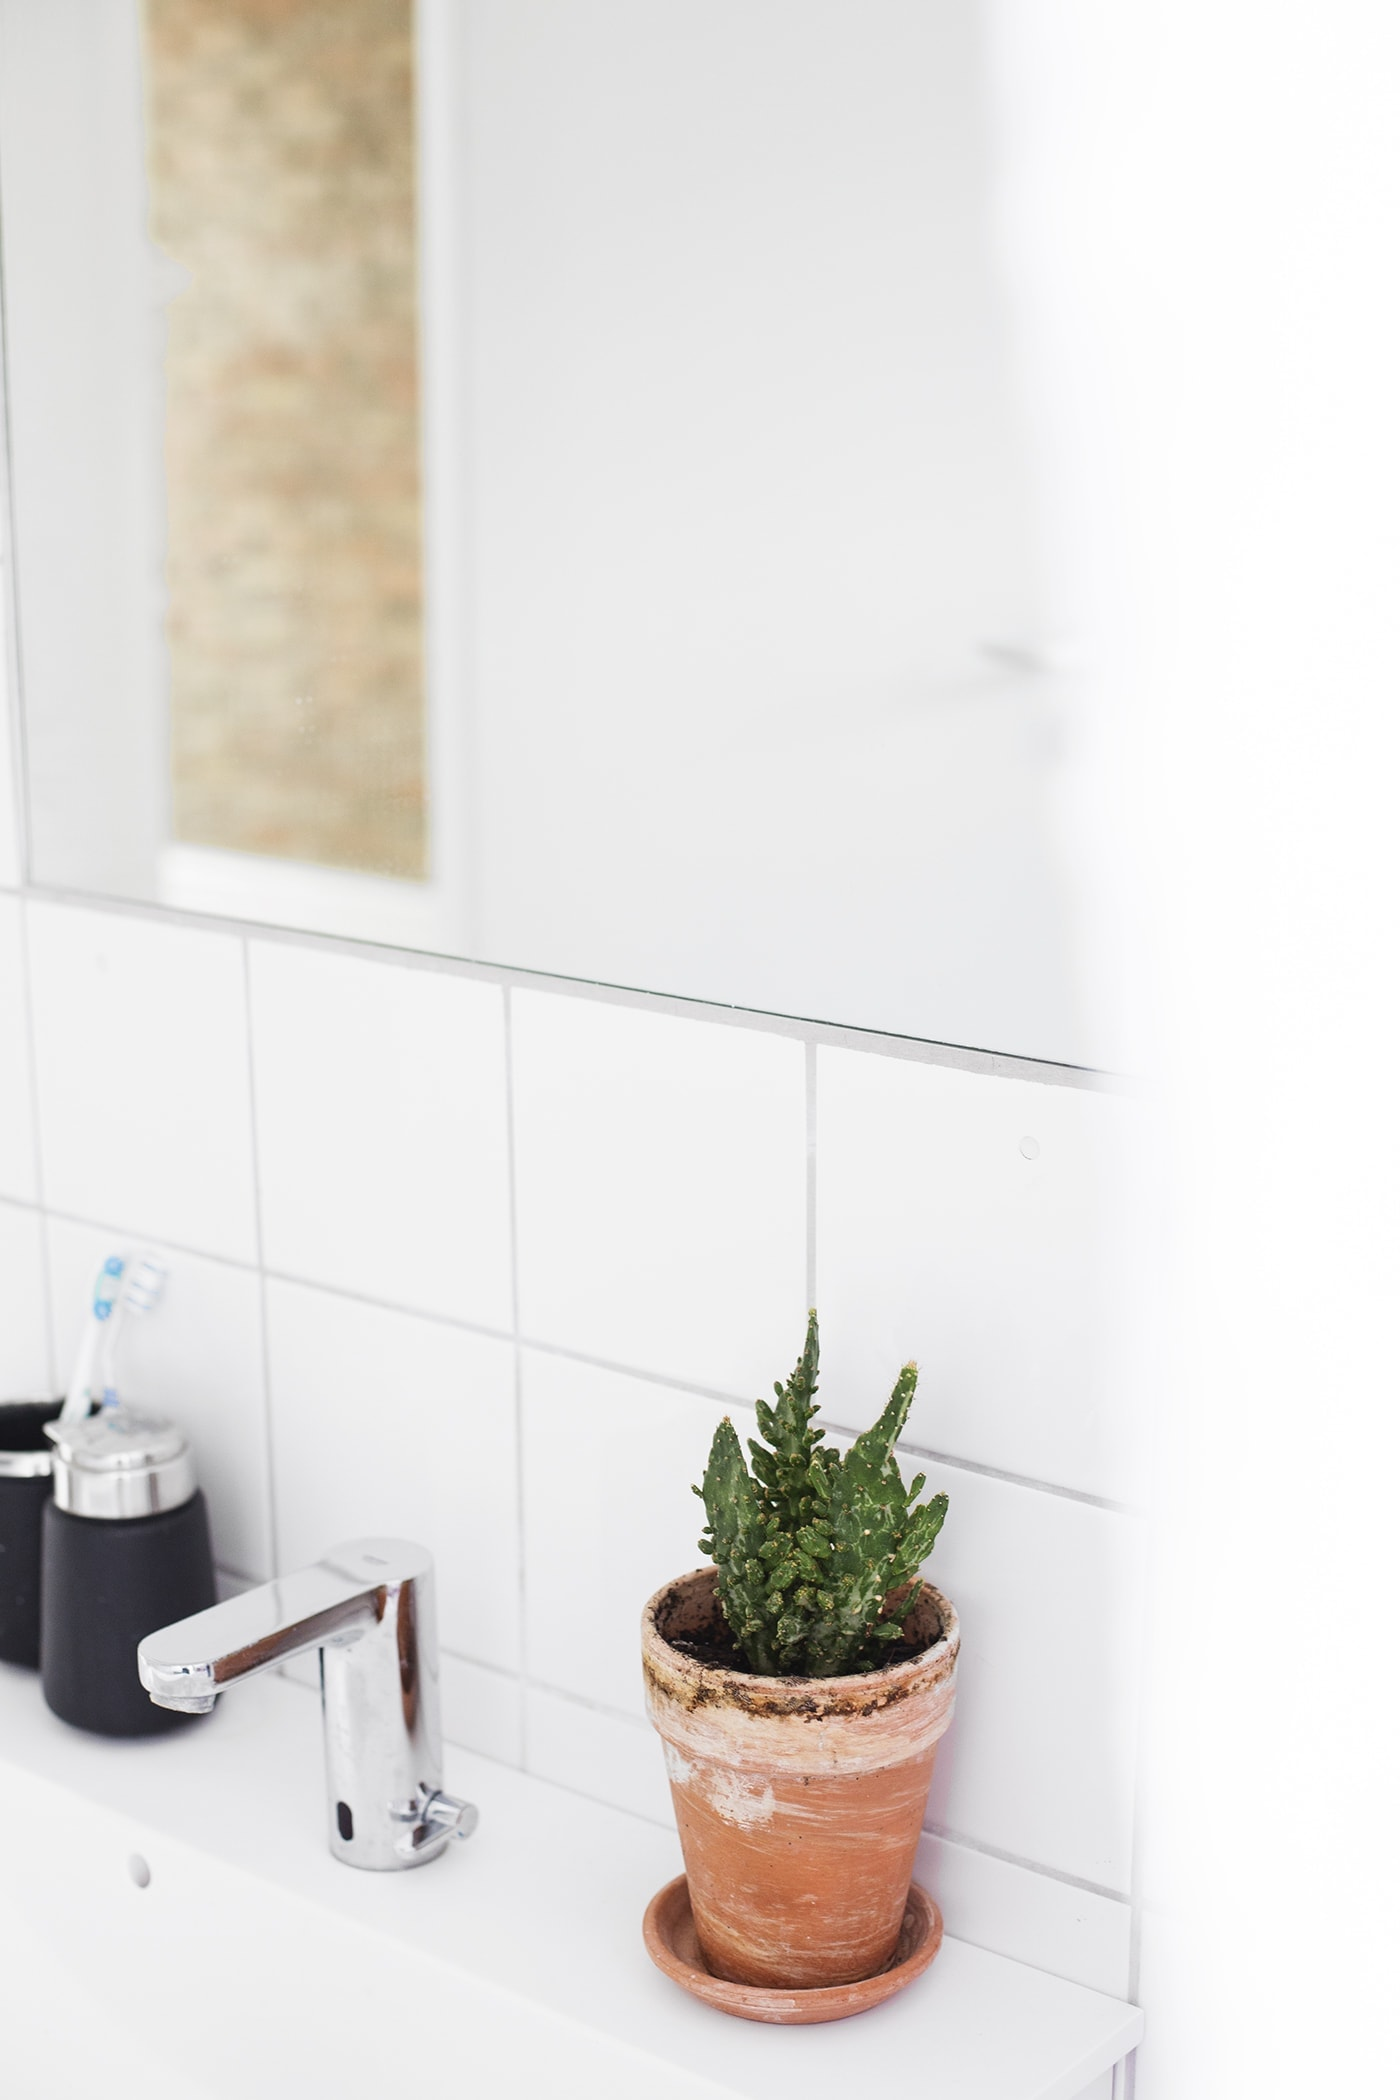 Copenhagen | wanderlust | air bnb bathroom